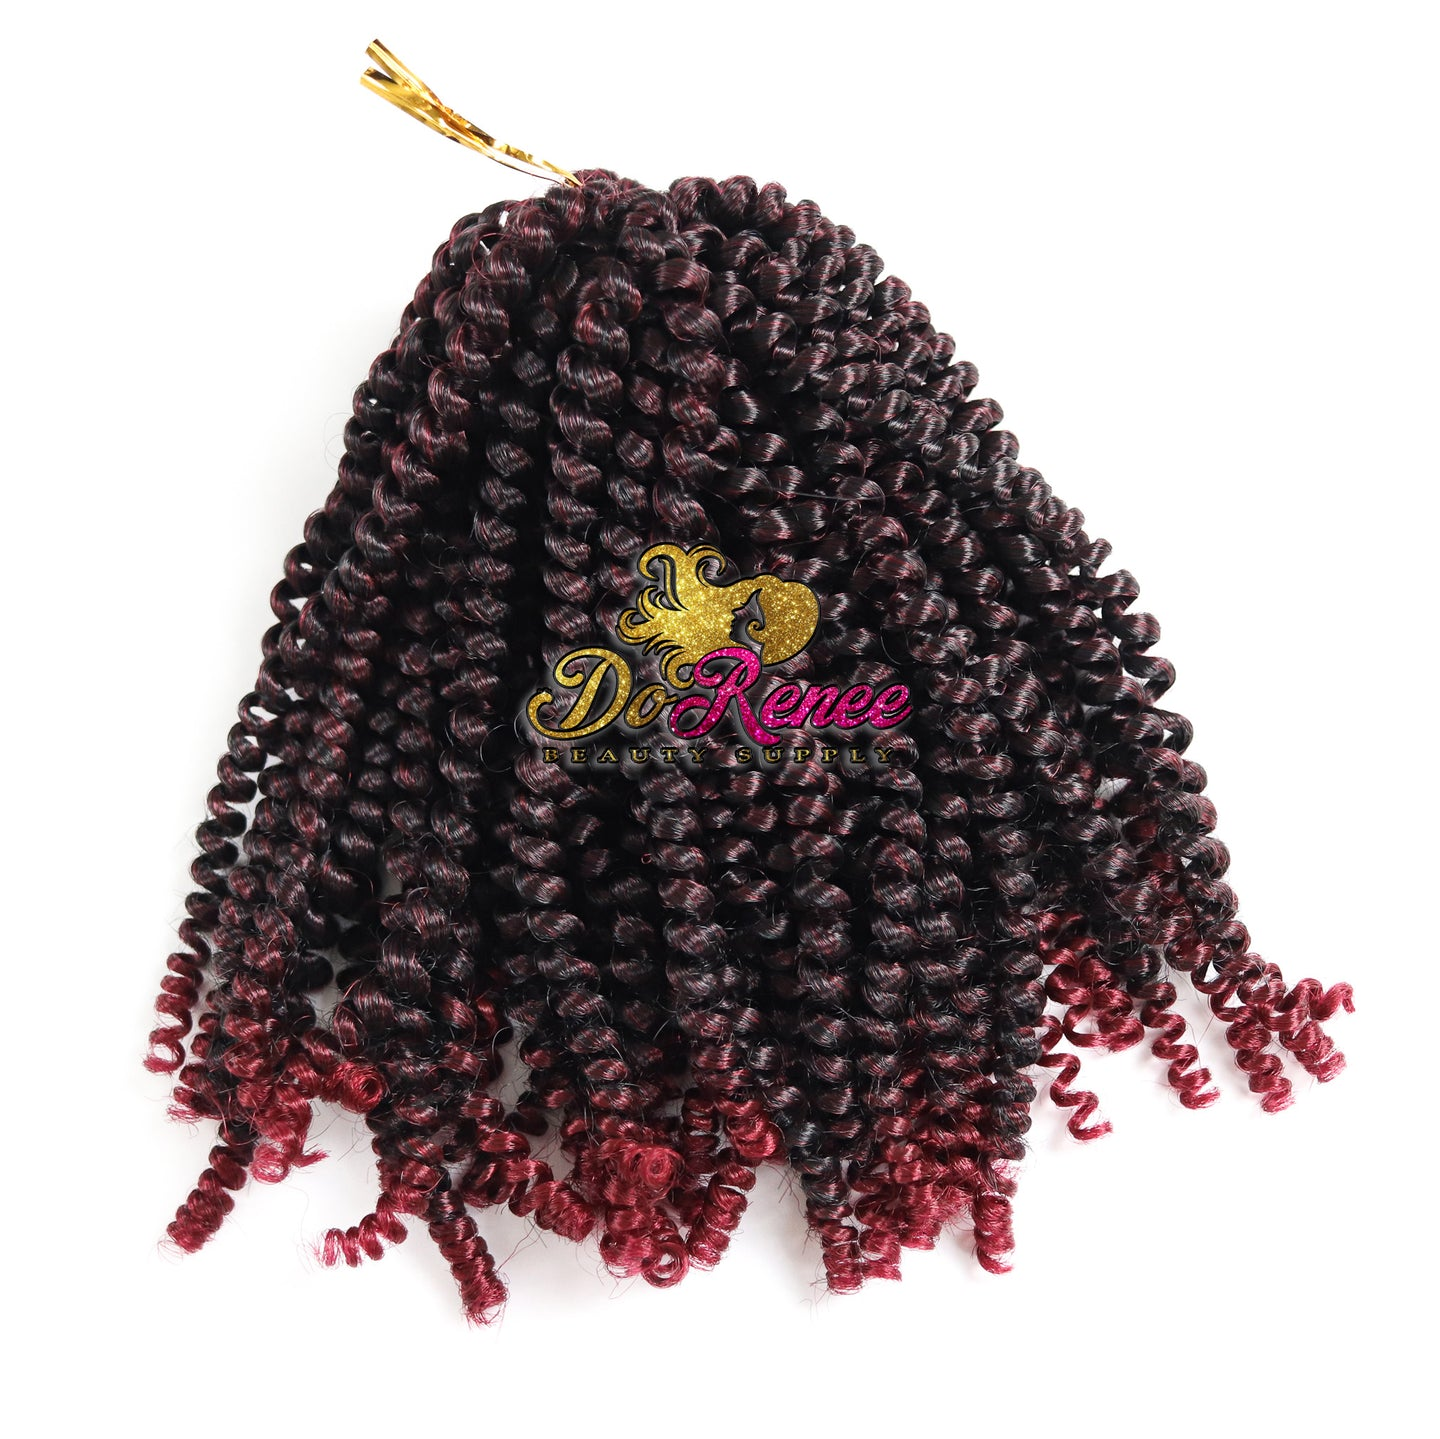 Spring Twist Hair 8inch Color TBURG (UNTWISTED)